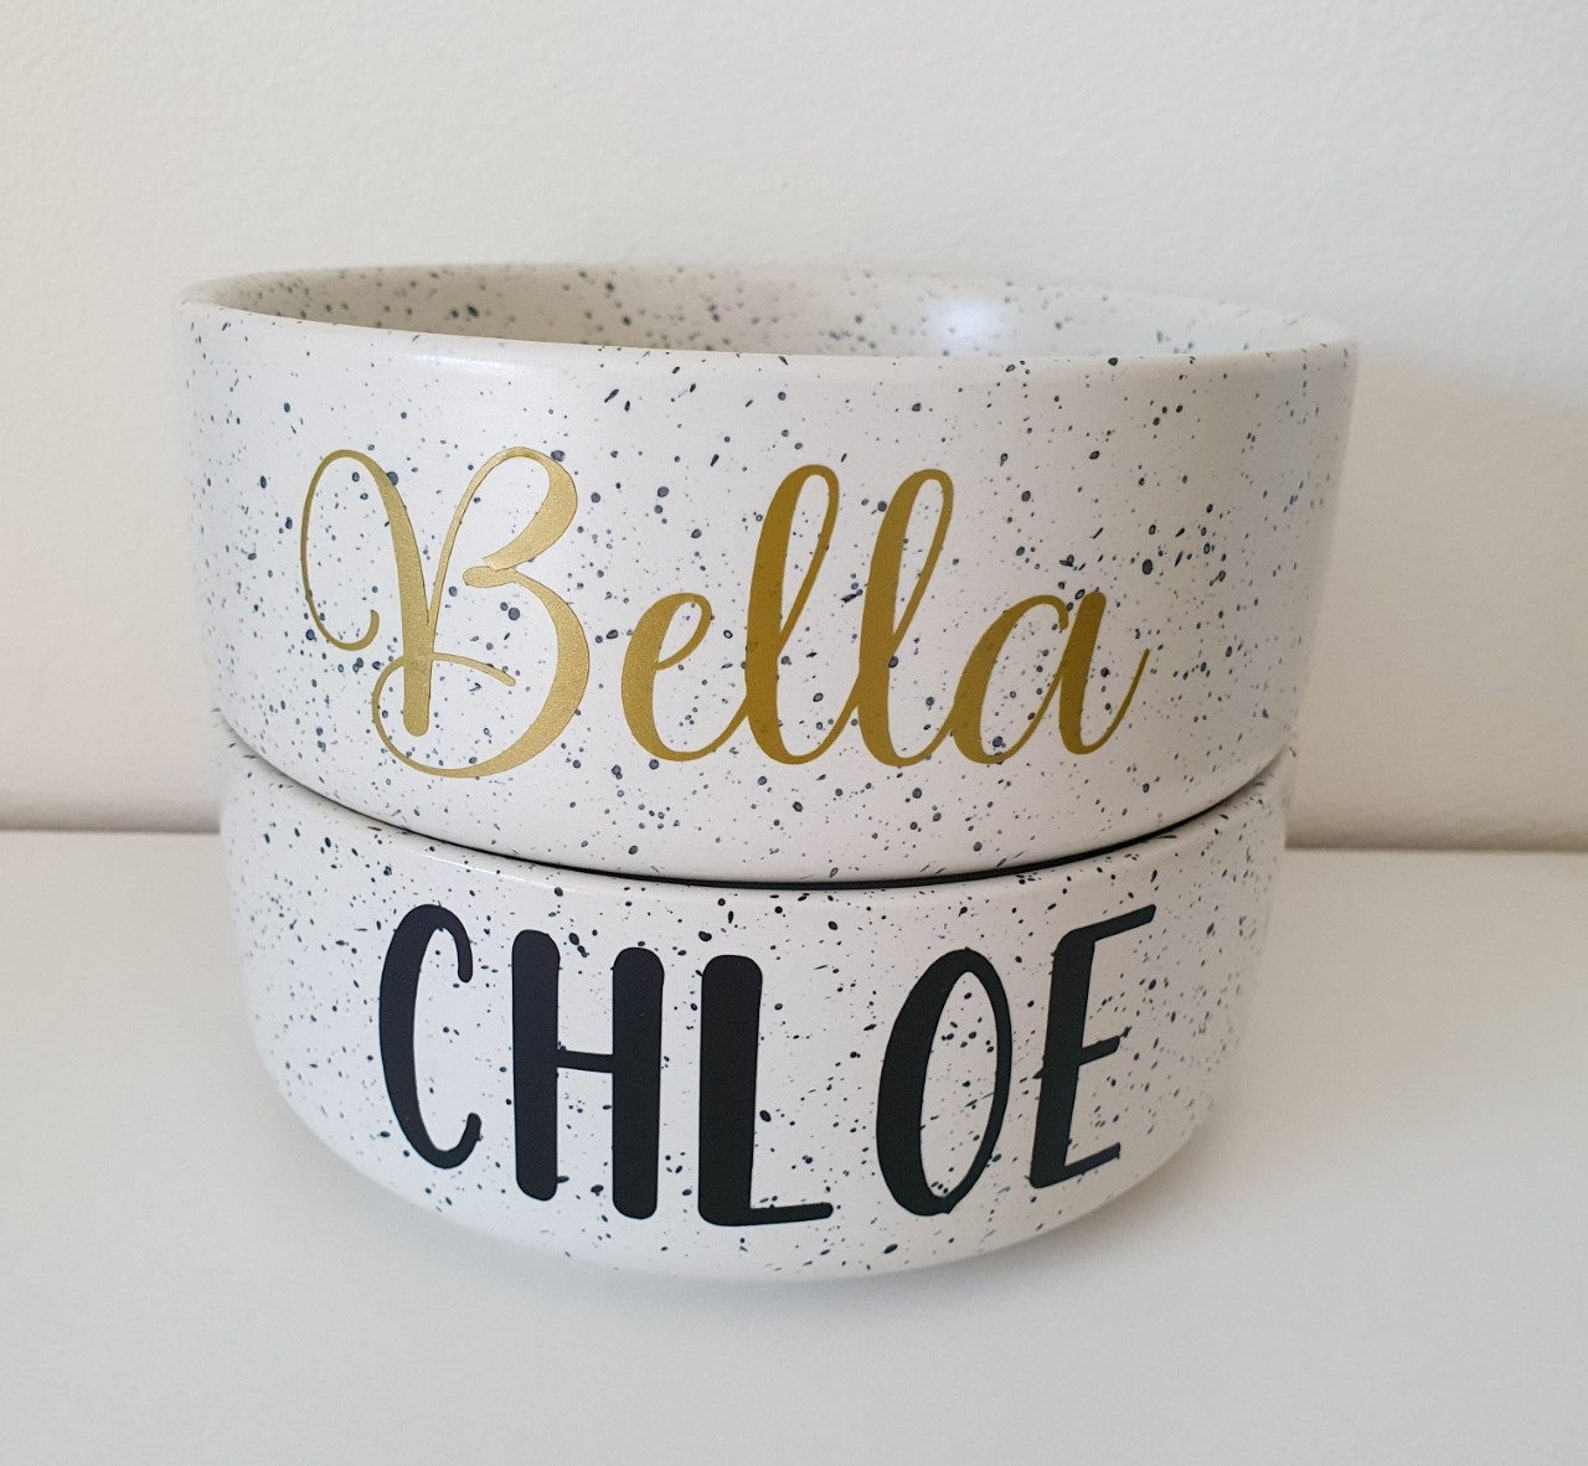 Two personalised dog bowls